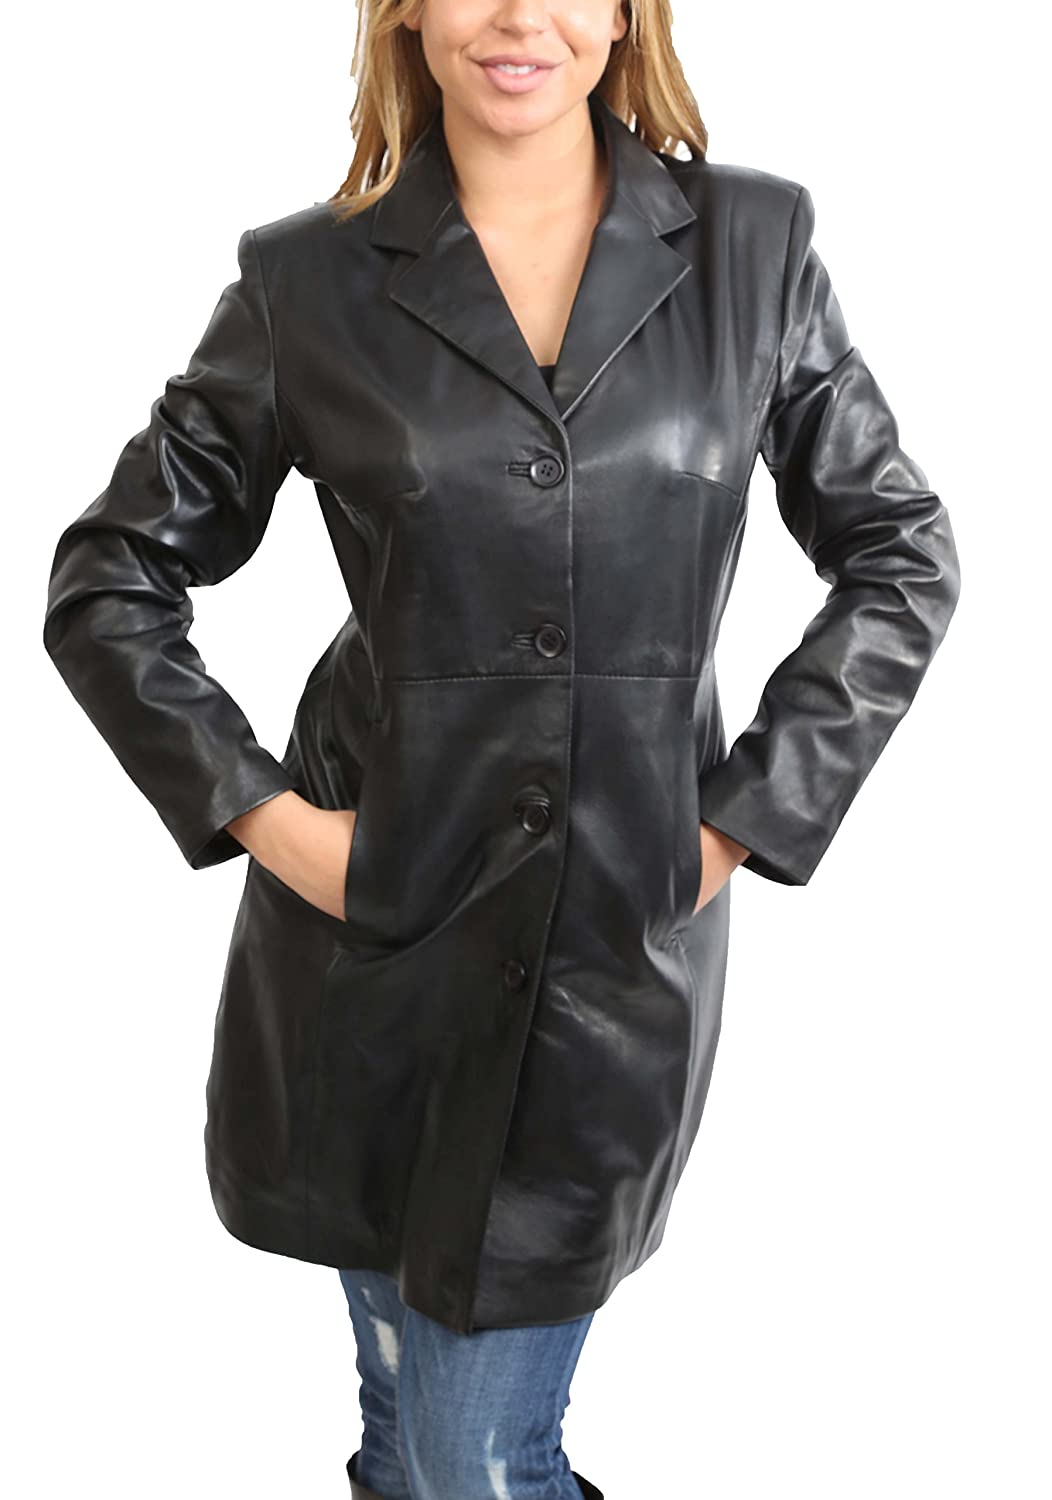 Ladies 3/4 Length Soft Leather Classic Long Single Breasted Coat F99 Black House of Leather